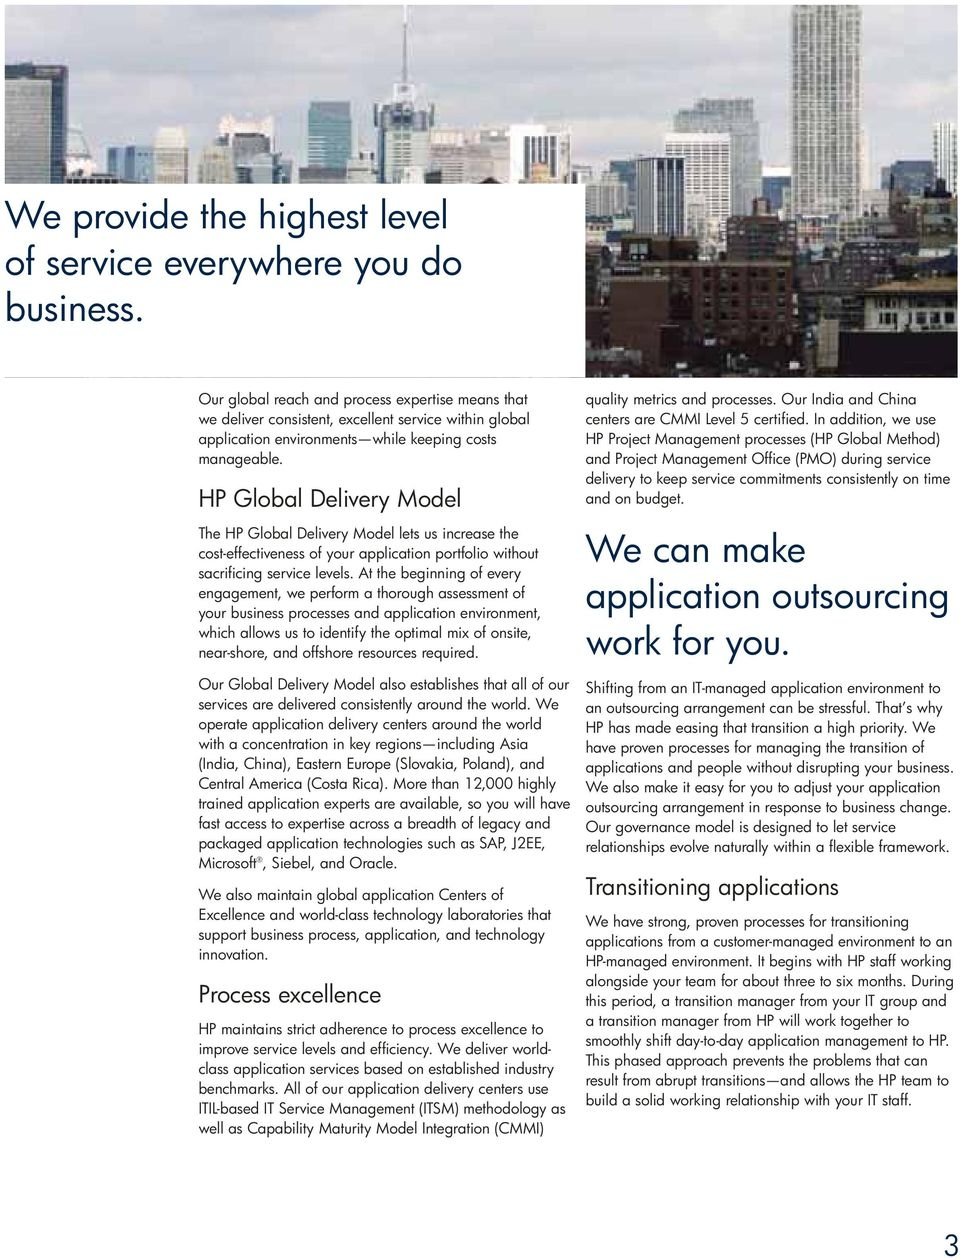 HP Global Delivery Model The HP Global Delivery Model lets us increase the cost-effectiveness of your application portfolio without sacrificing service levels.